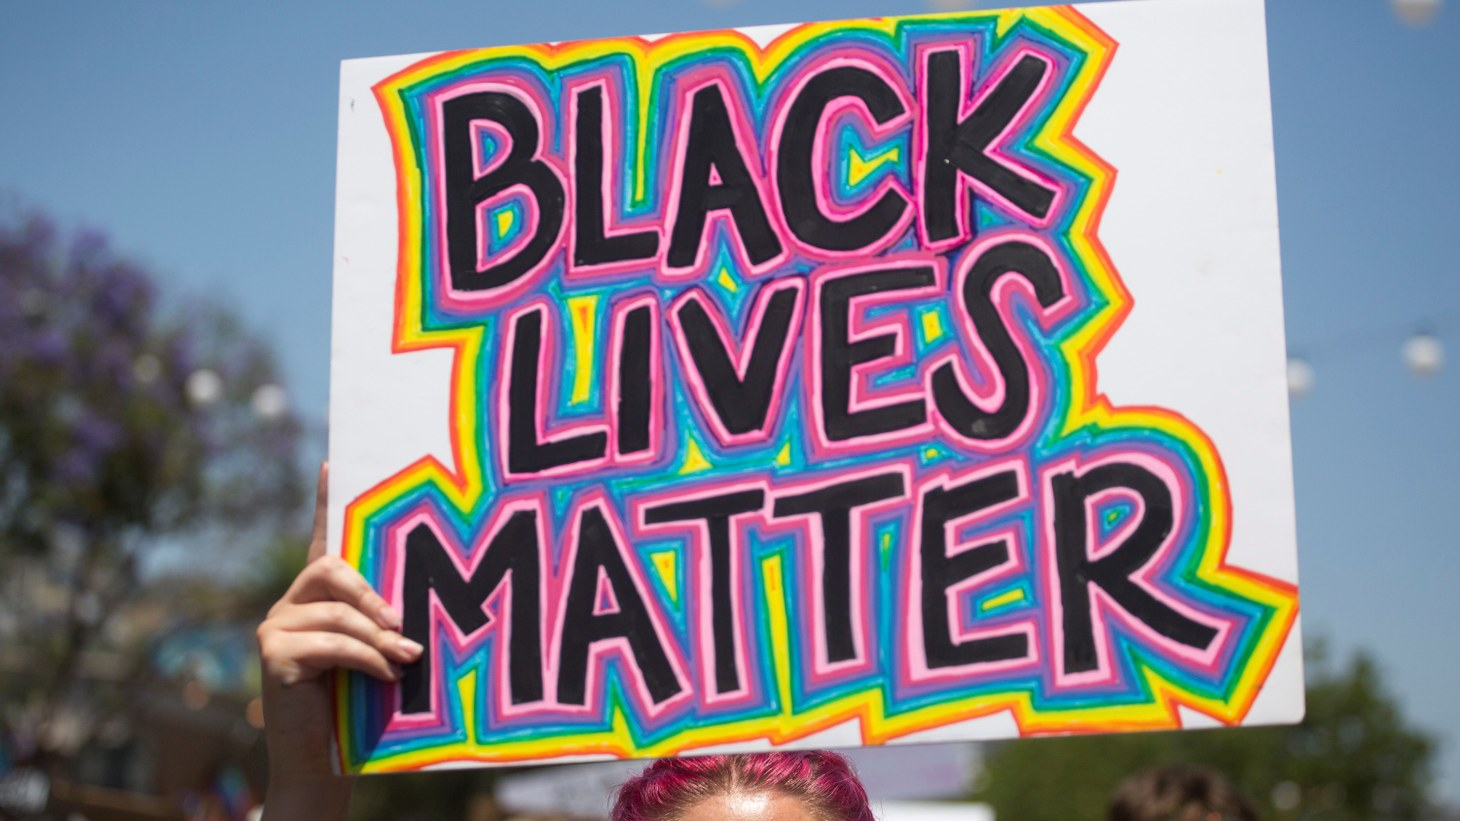 """A person holding a sign reading """"Black Lives Matter"""" takes part in an All Black Lives Matter march, organized by Black LGBTQ+ leaders, in the aftermath of the death of George Floyd, in Hollywood, Los Angeles, California, U.S., June 14, 2020."""